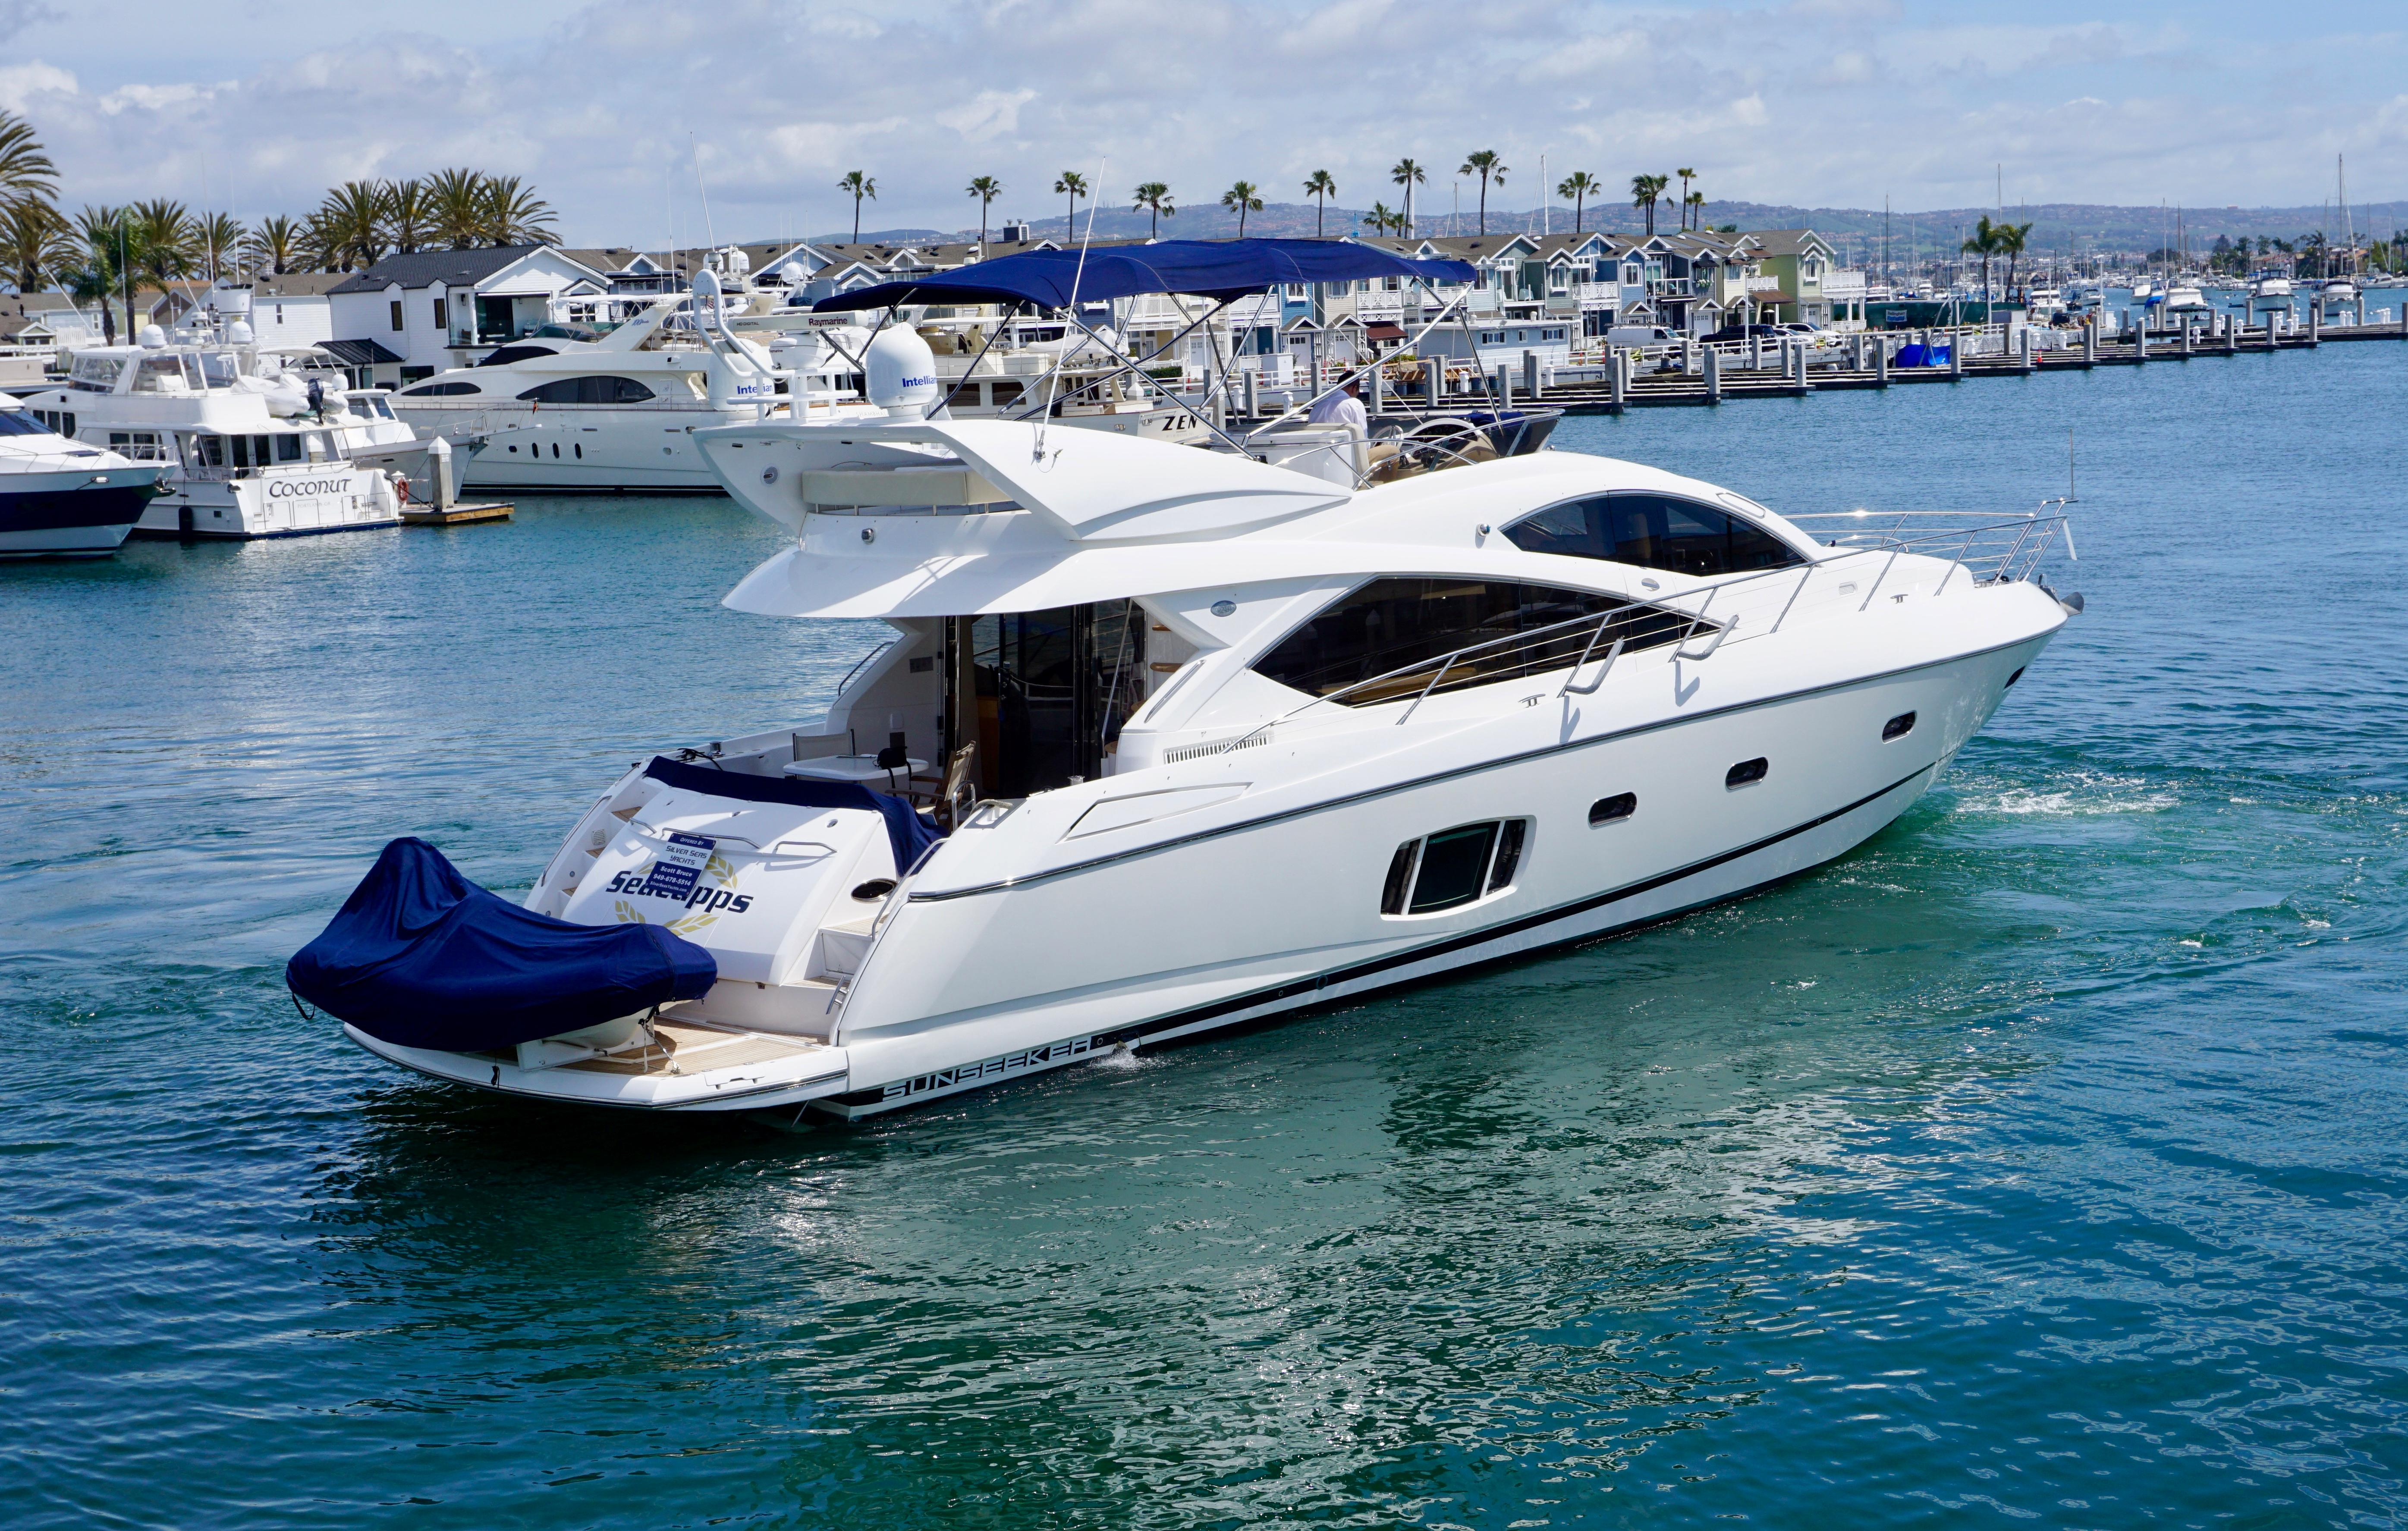 Free Boat Values, Yacht Values - What's my boat worth?